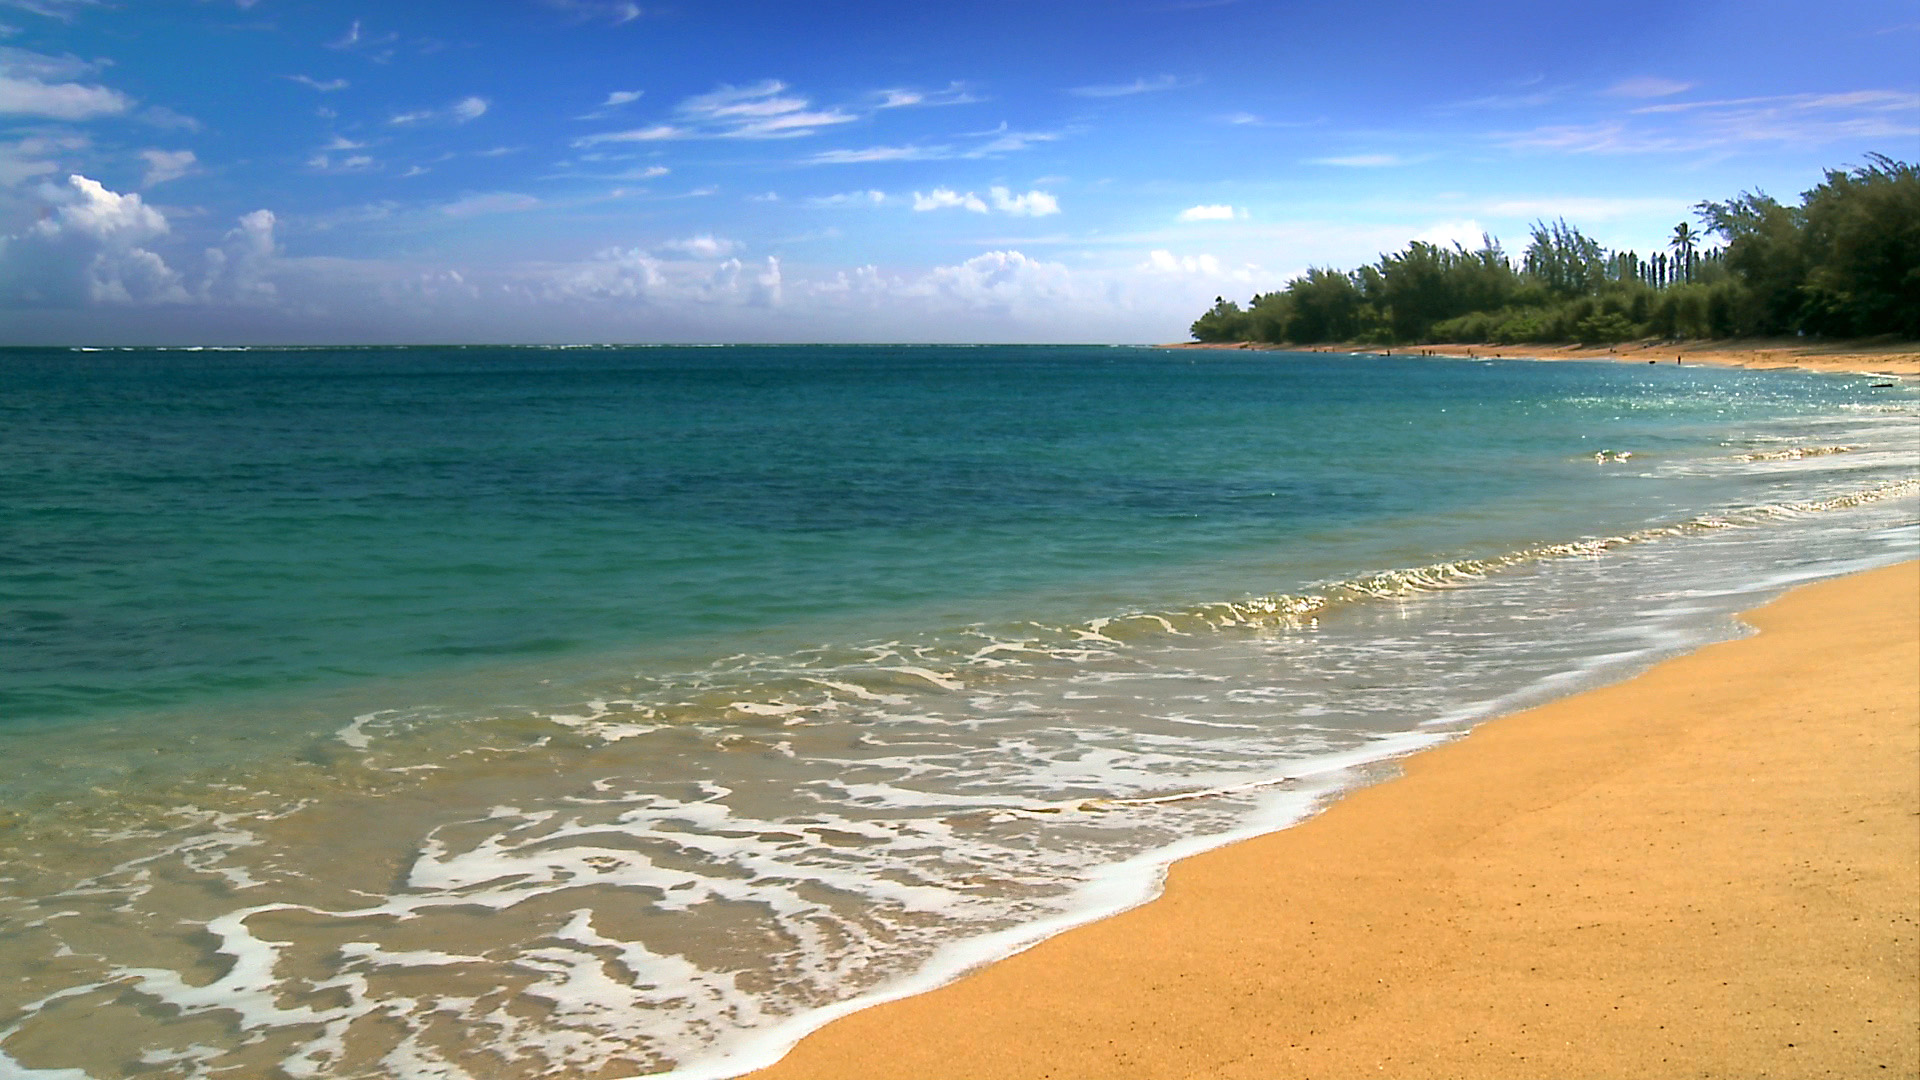 See The Most Beautiful Hawaii Beaches Photos From Our New Hd Video Dvd Amp Blu Ray The 1 Nature